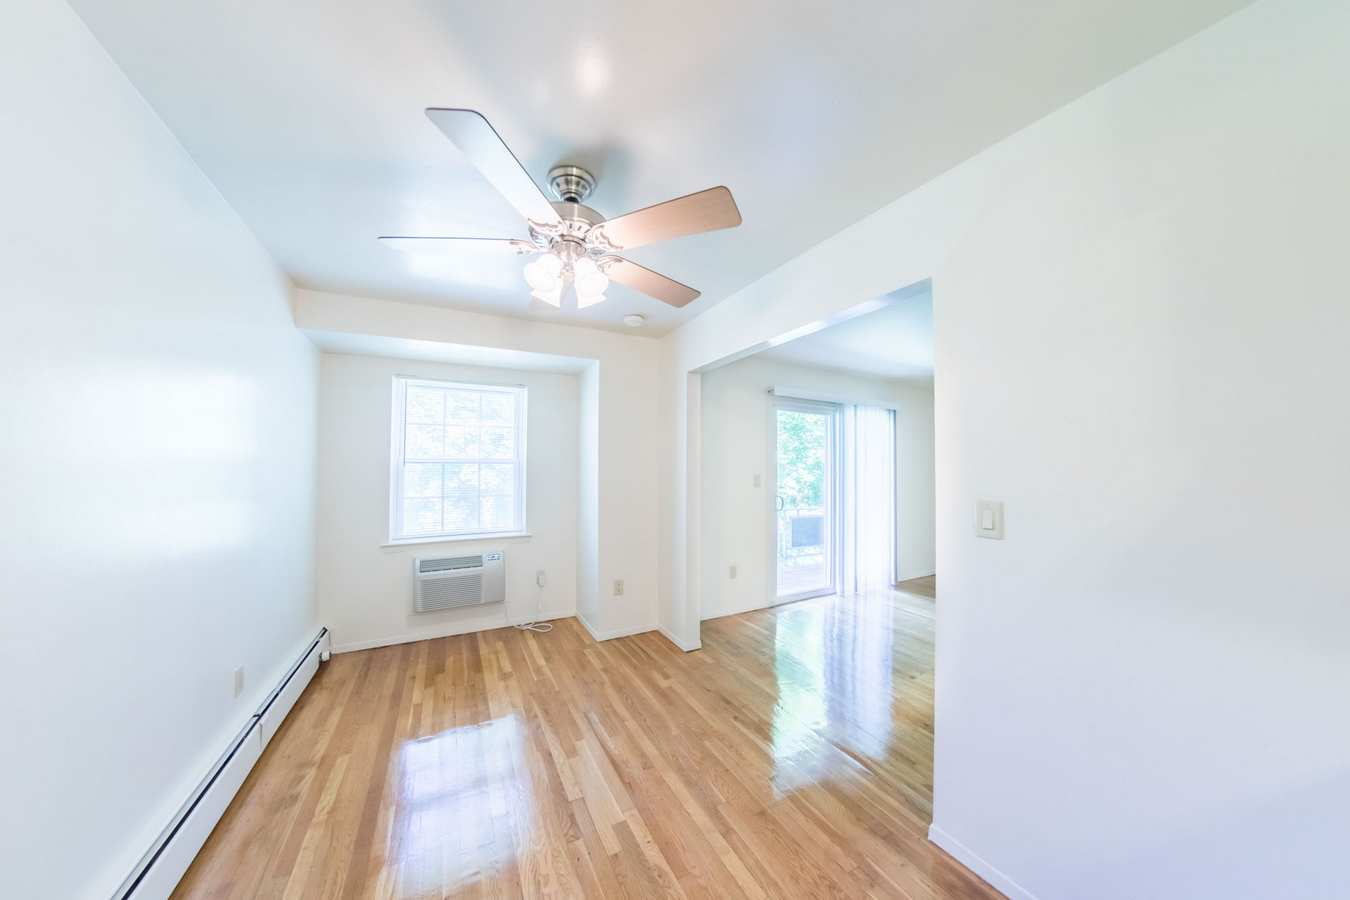 Spacious apartment with wood floors at The Manors in Pomona, New York